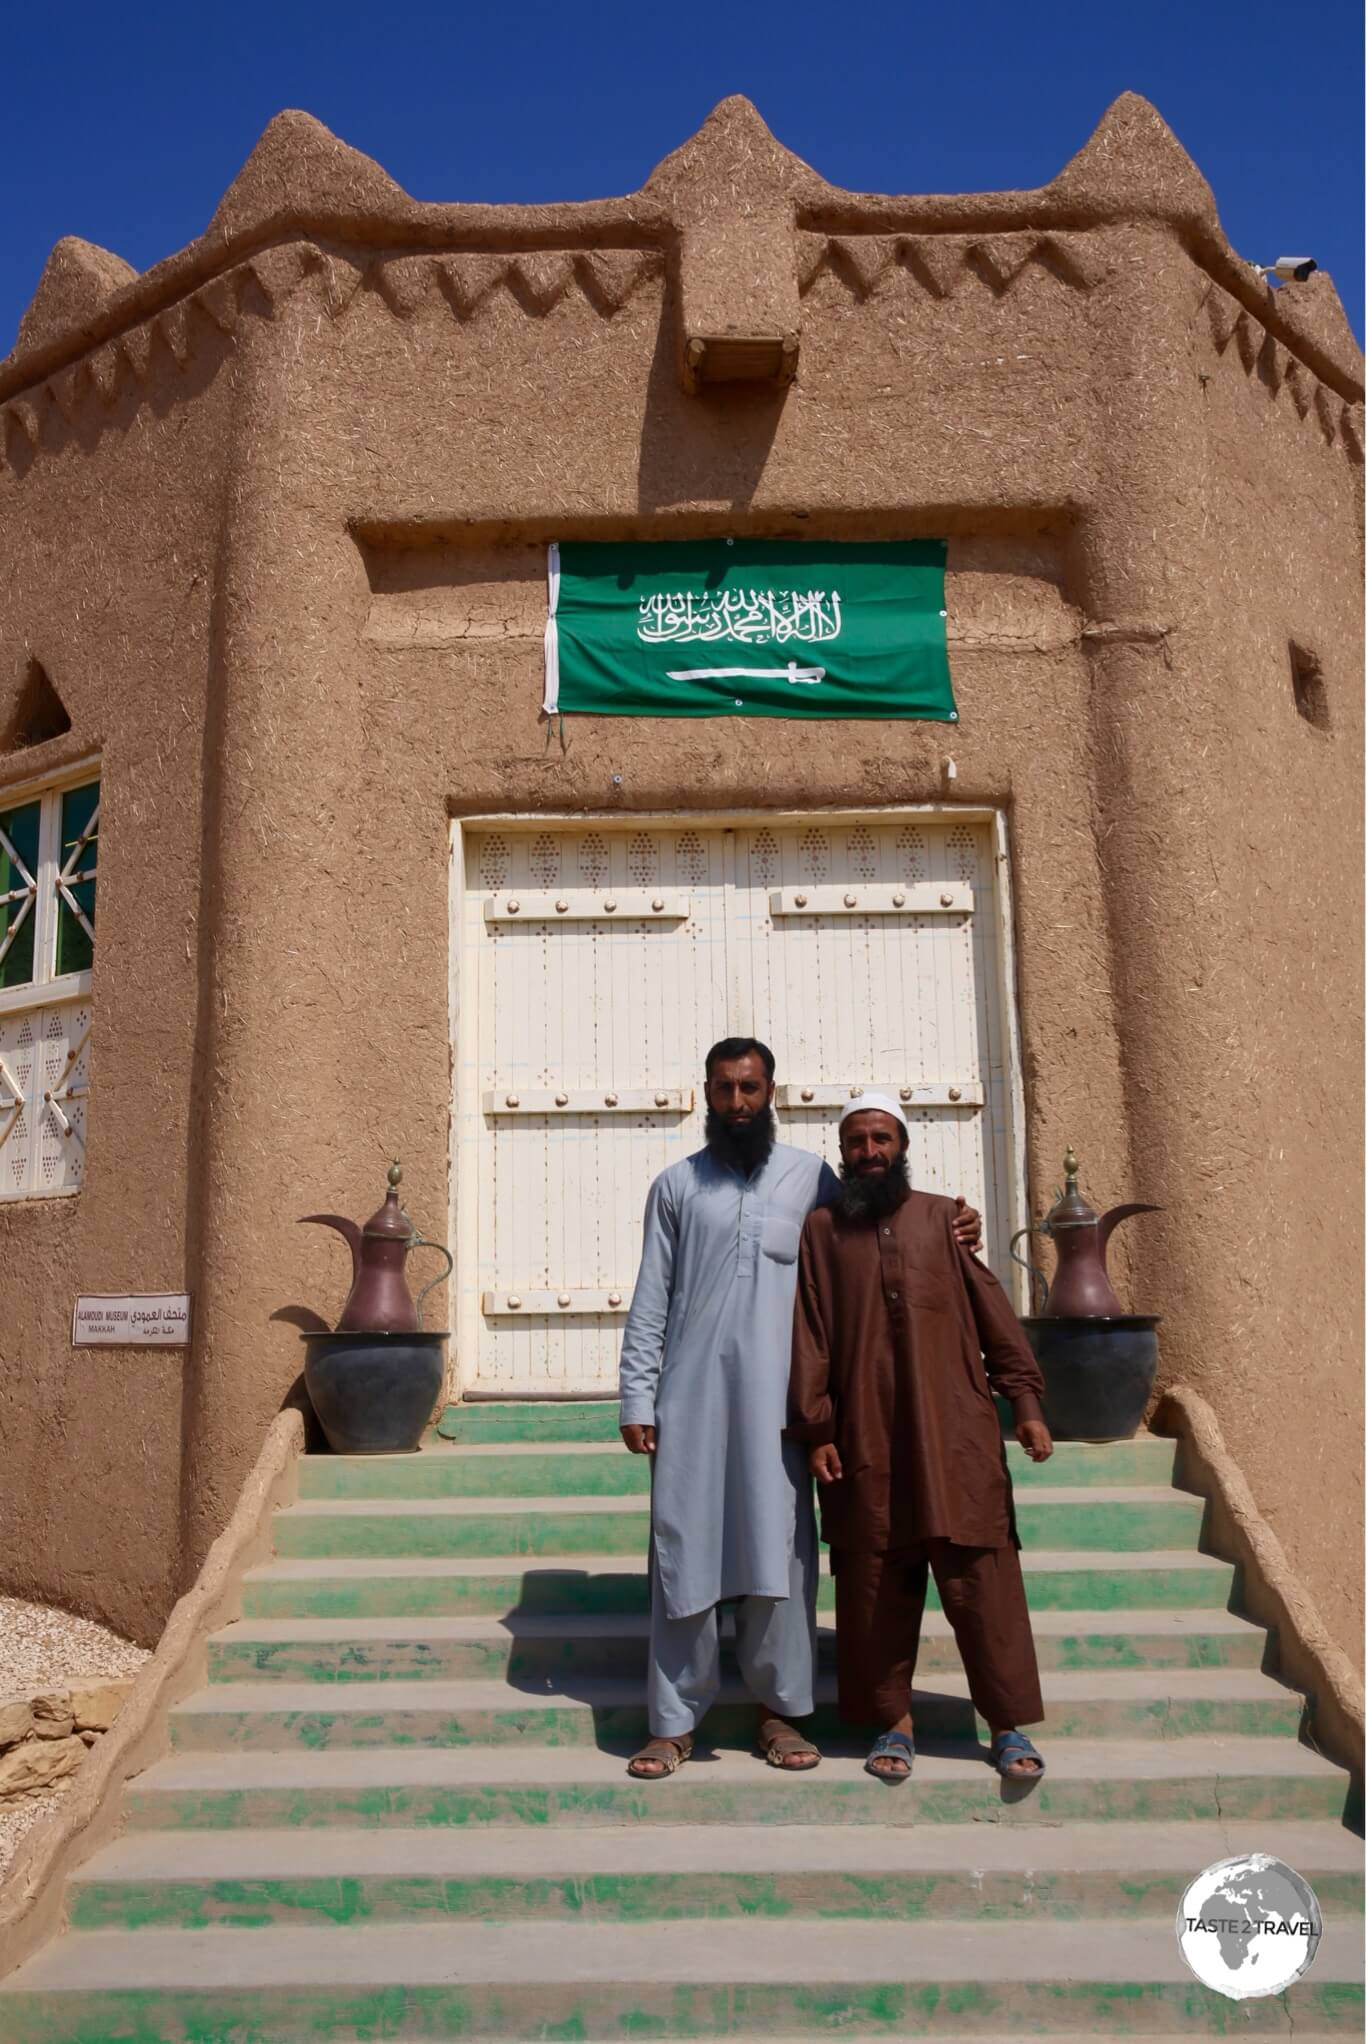 The friendly guides at the Al-Amoudi museum, Naeem (left) and Fazad.